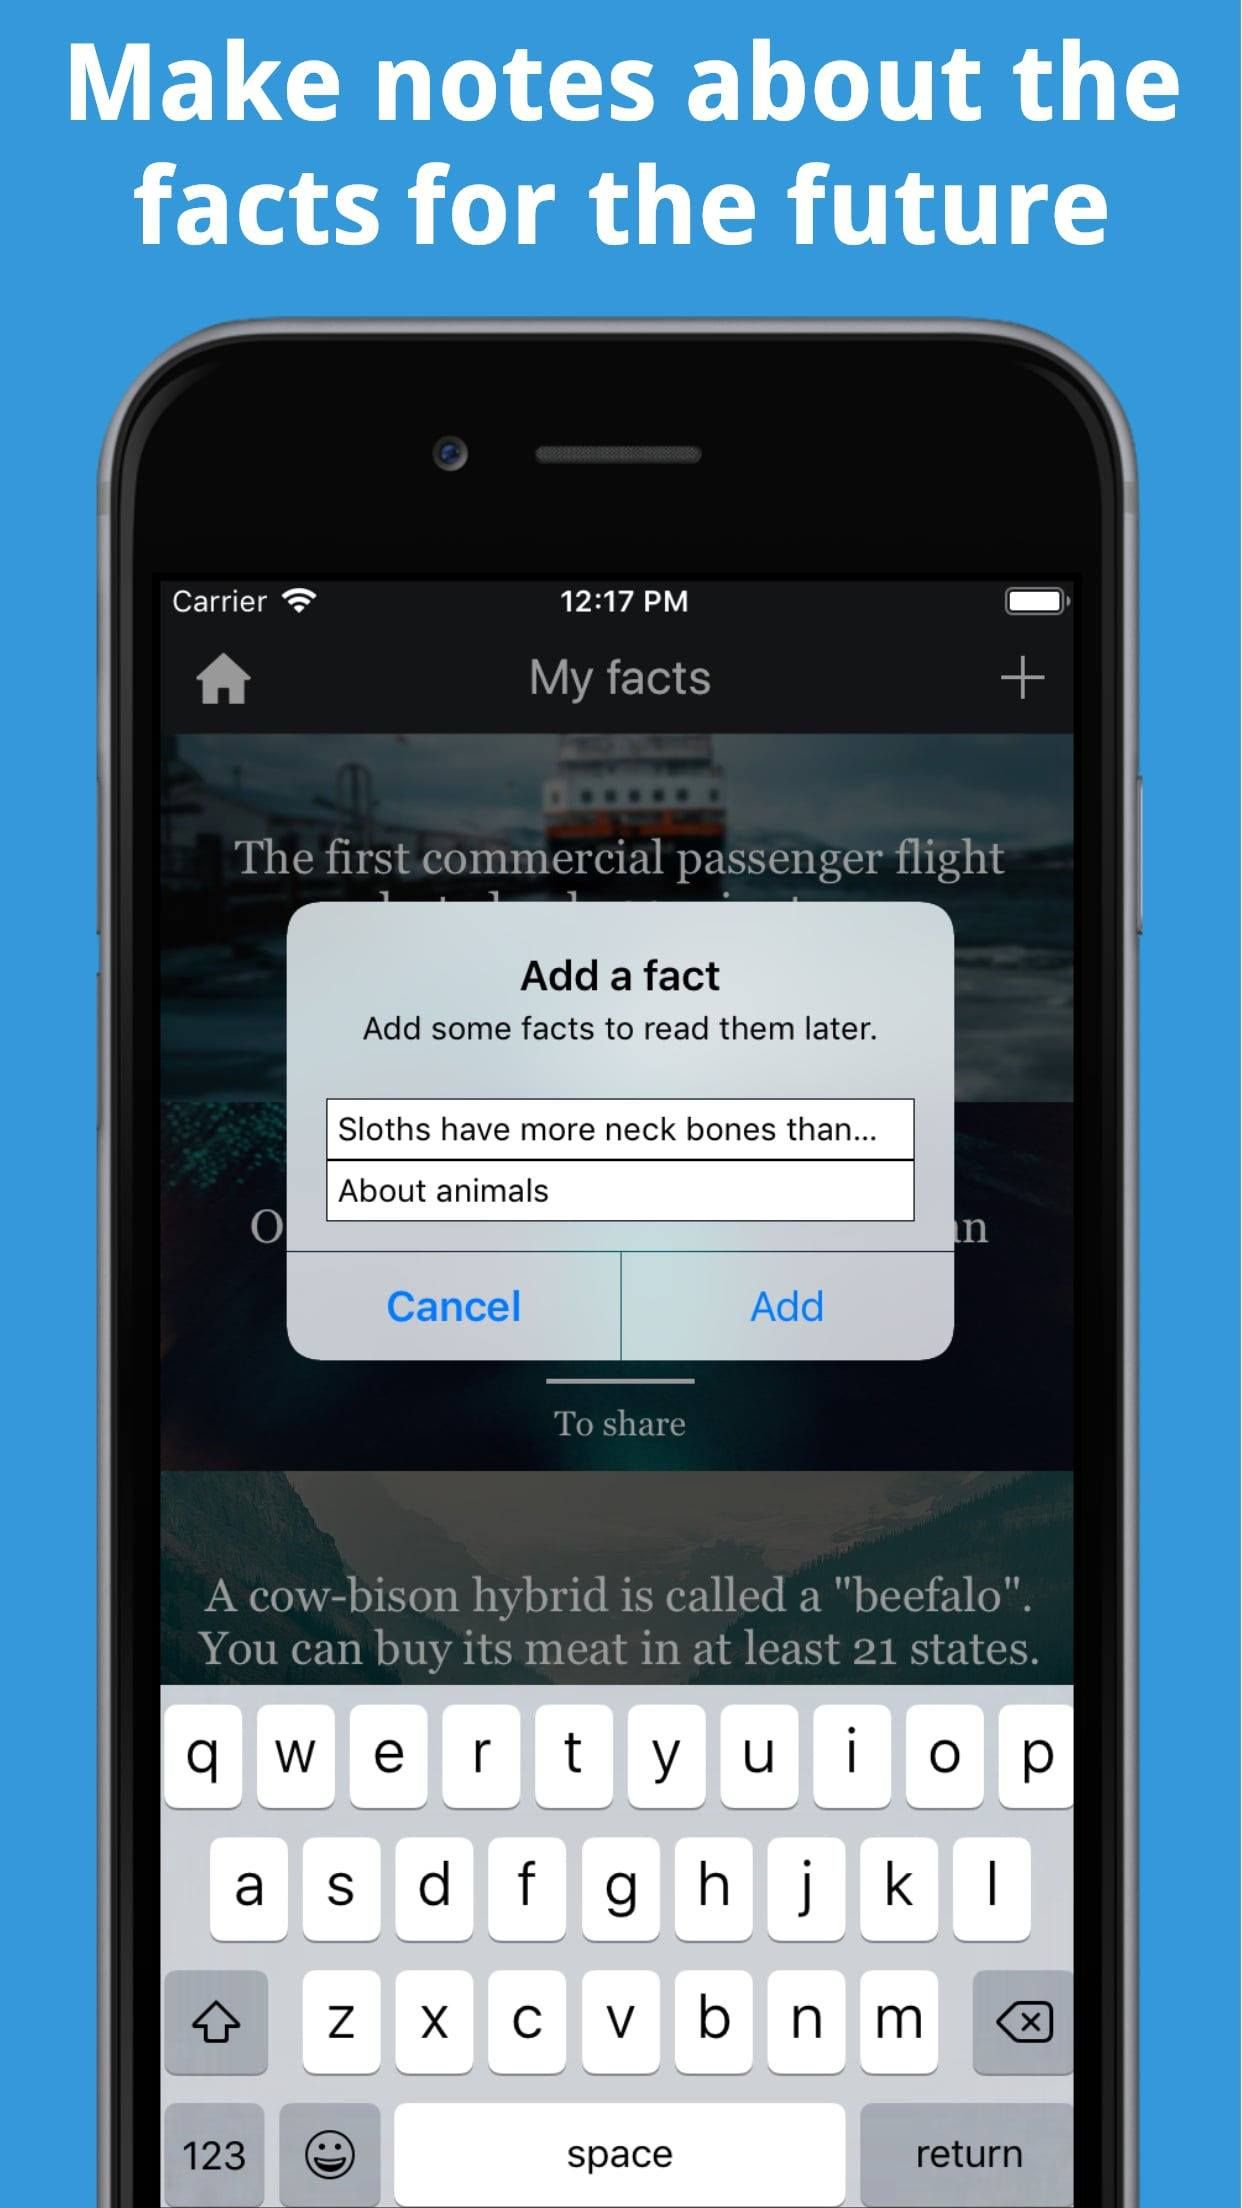 Facts World - iOS Facts and Notes Application Screenshot 6